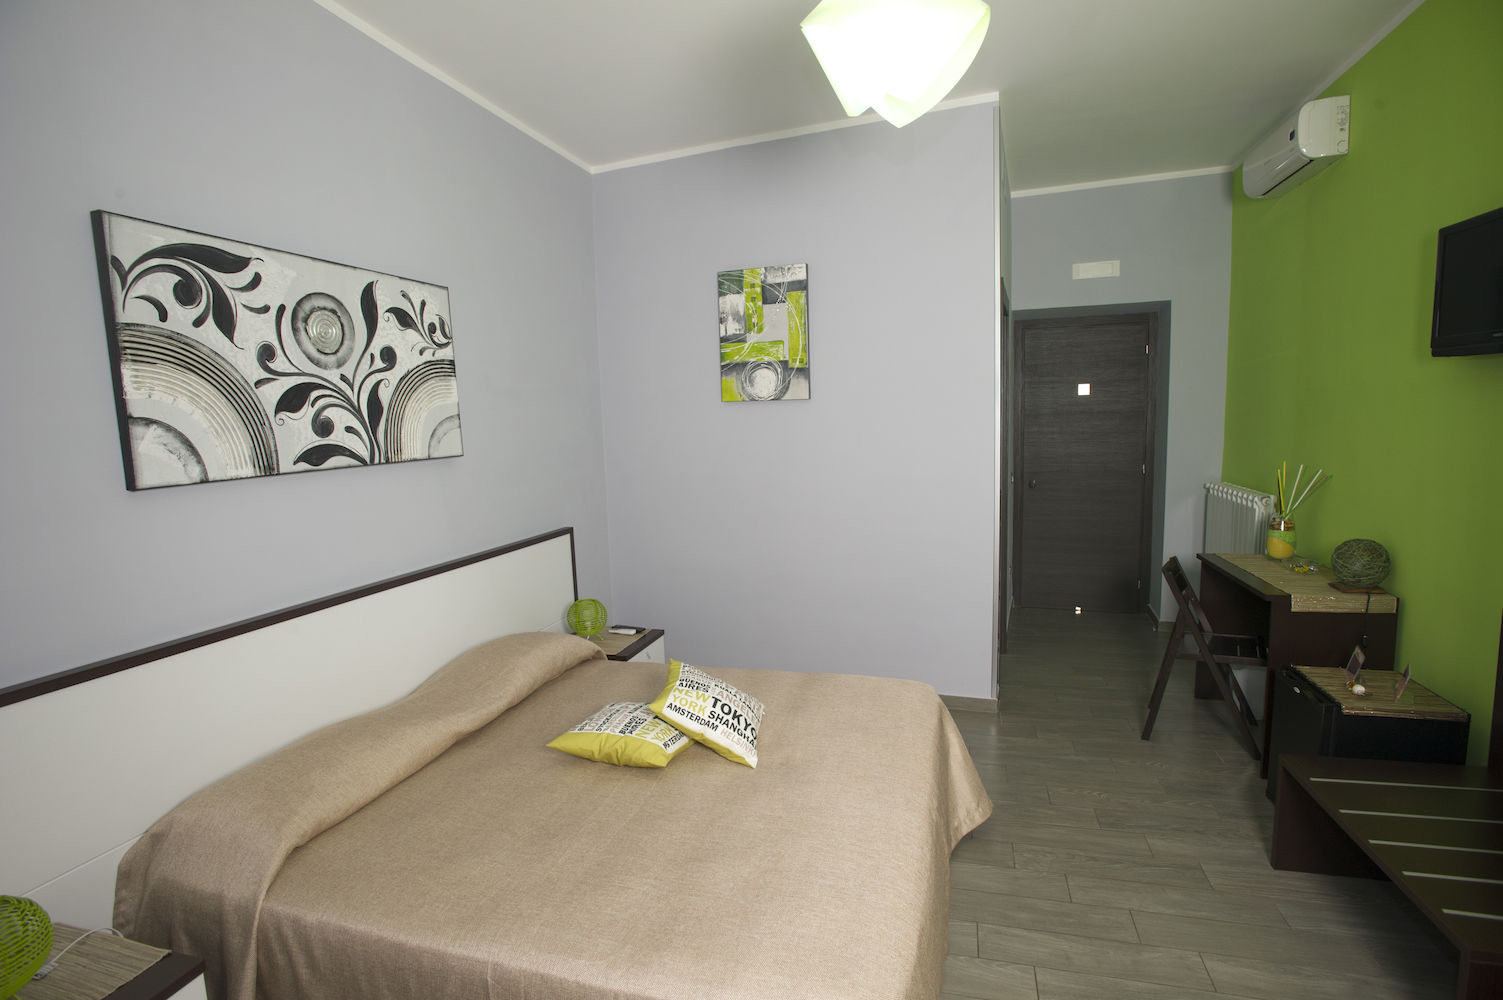 Bed and Breakfast Eco Pompei, double green room with balcony.